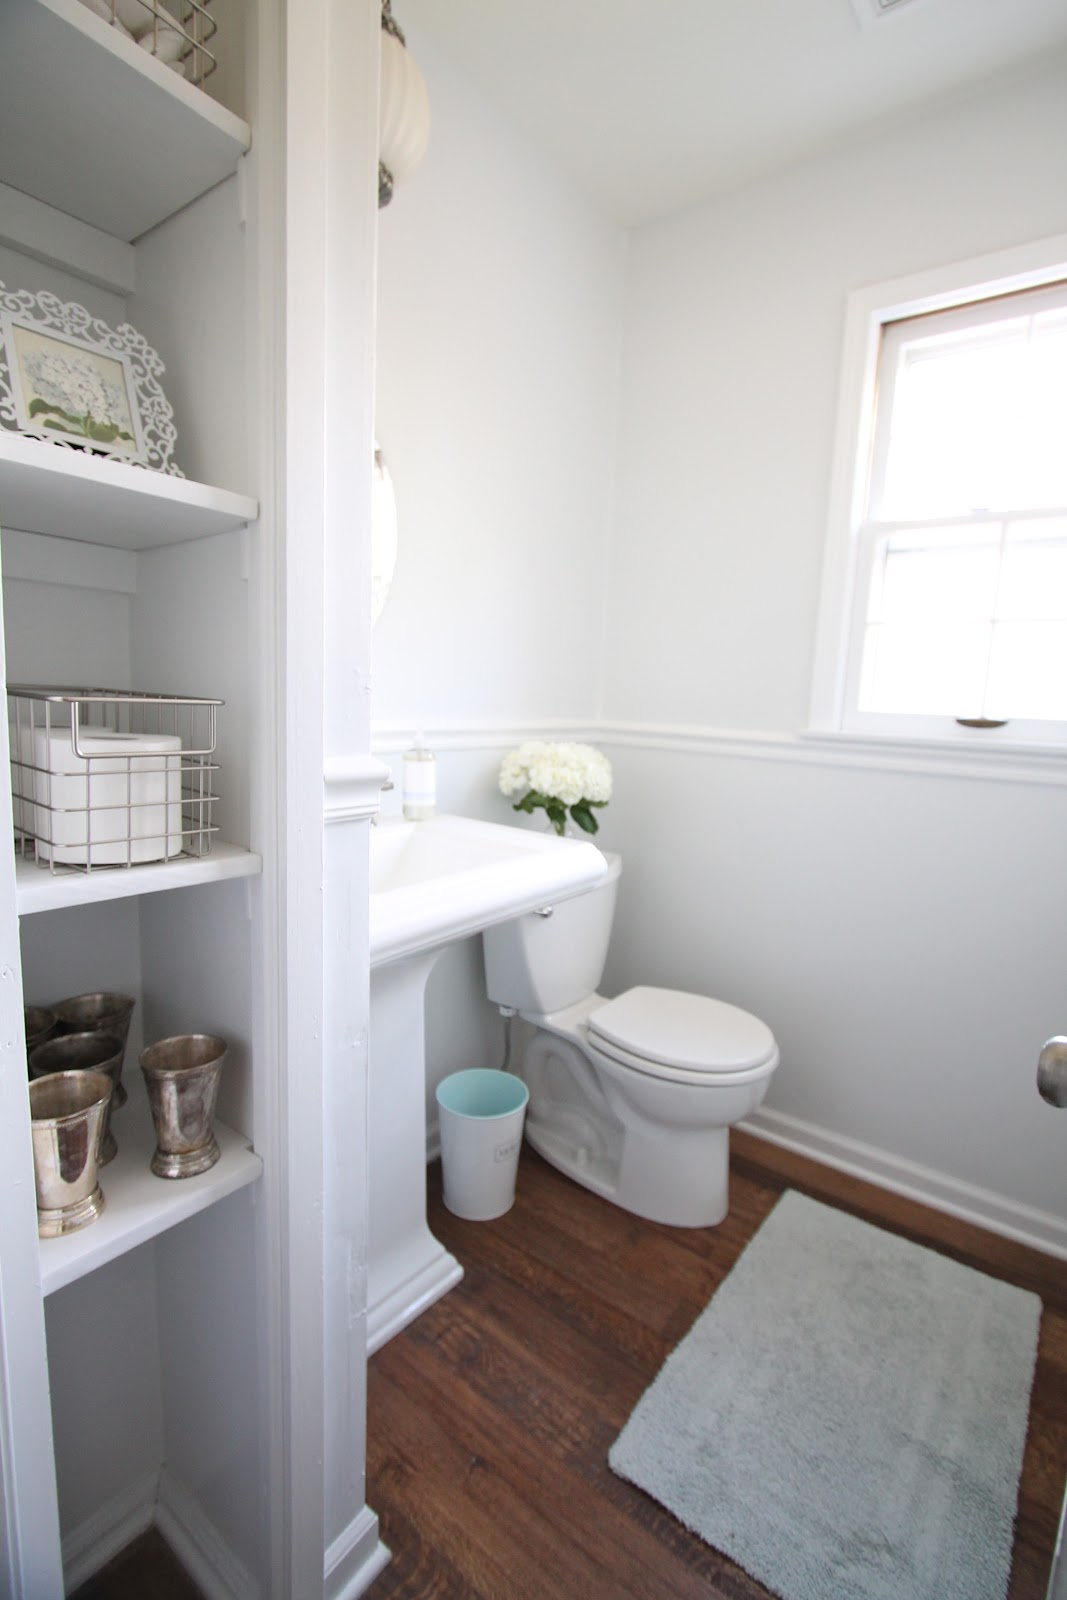 DIY Bathroom Remodel Julie Blanner - Cheap diy bathroom remodel ideas